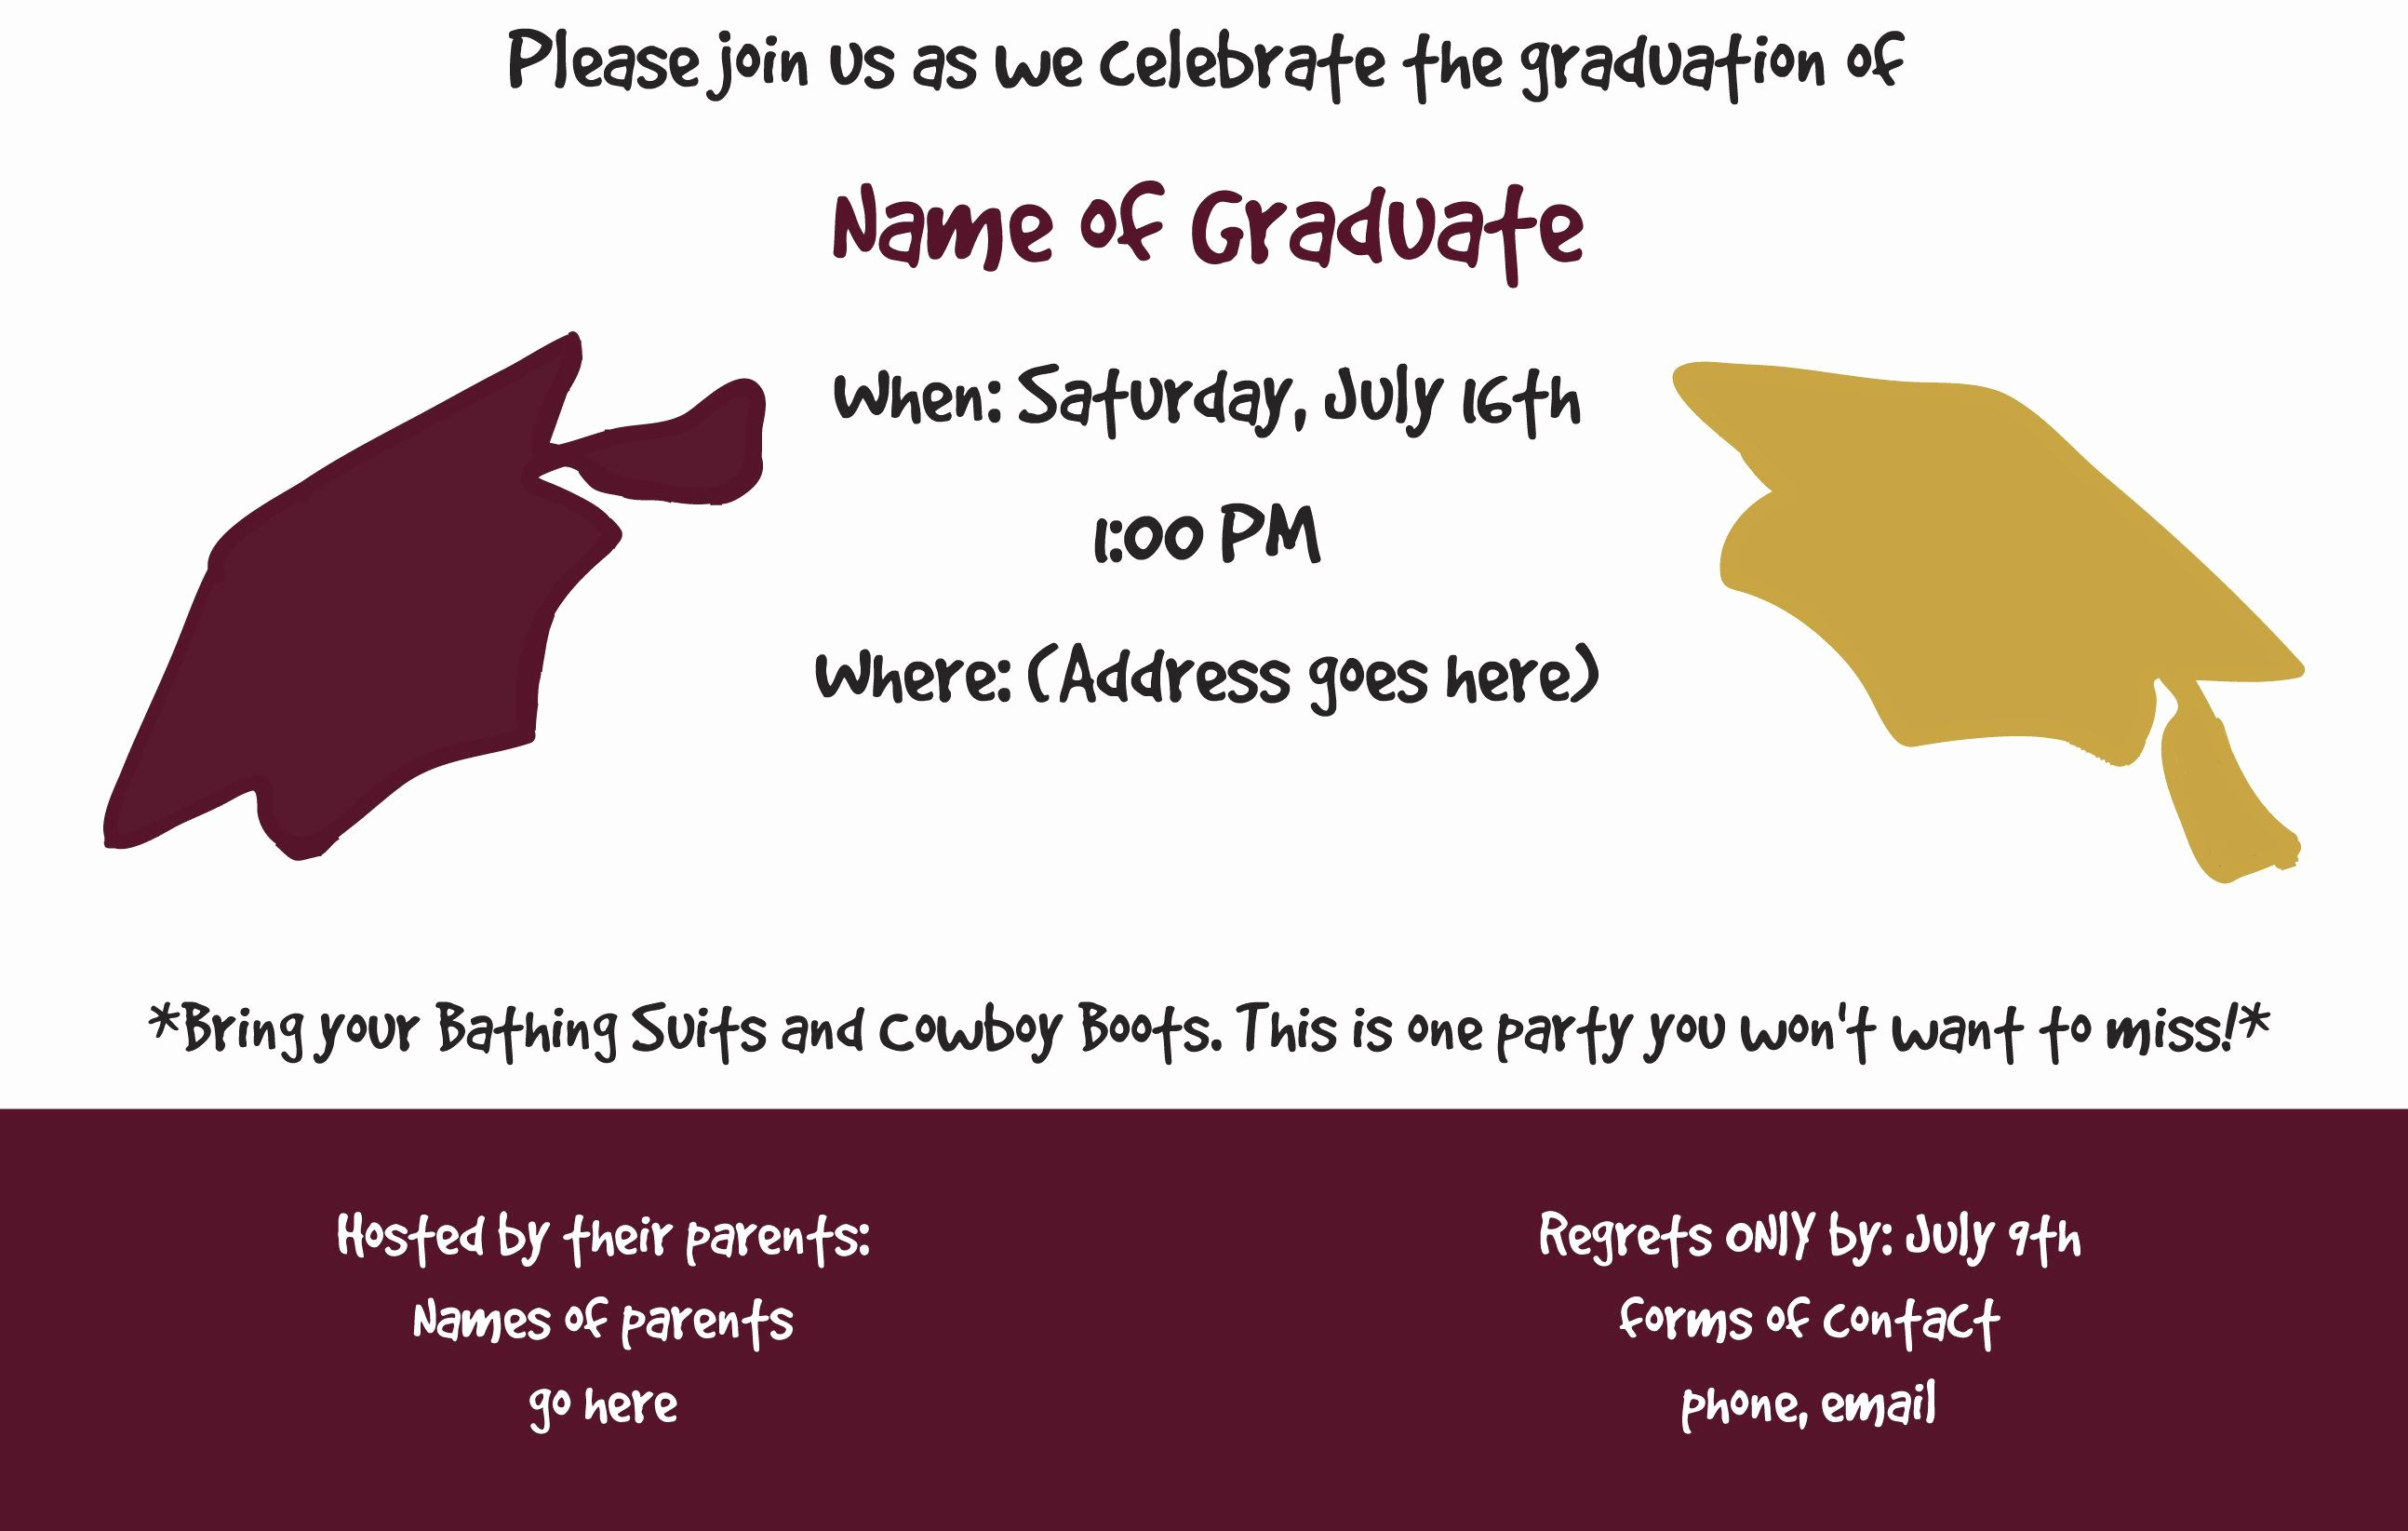 Template for Graduation Party Invitation Inspirational Graduation Party Invitation Template Graduation Party